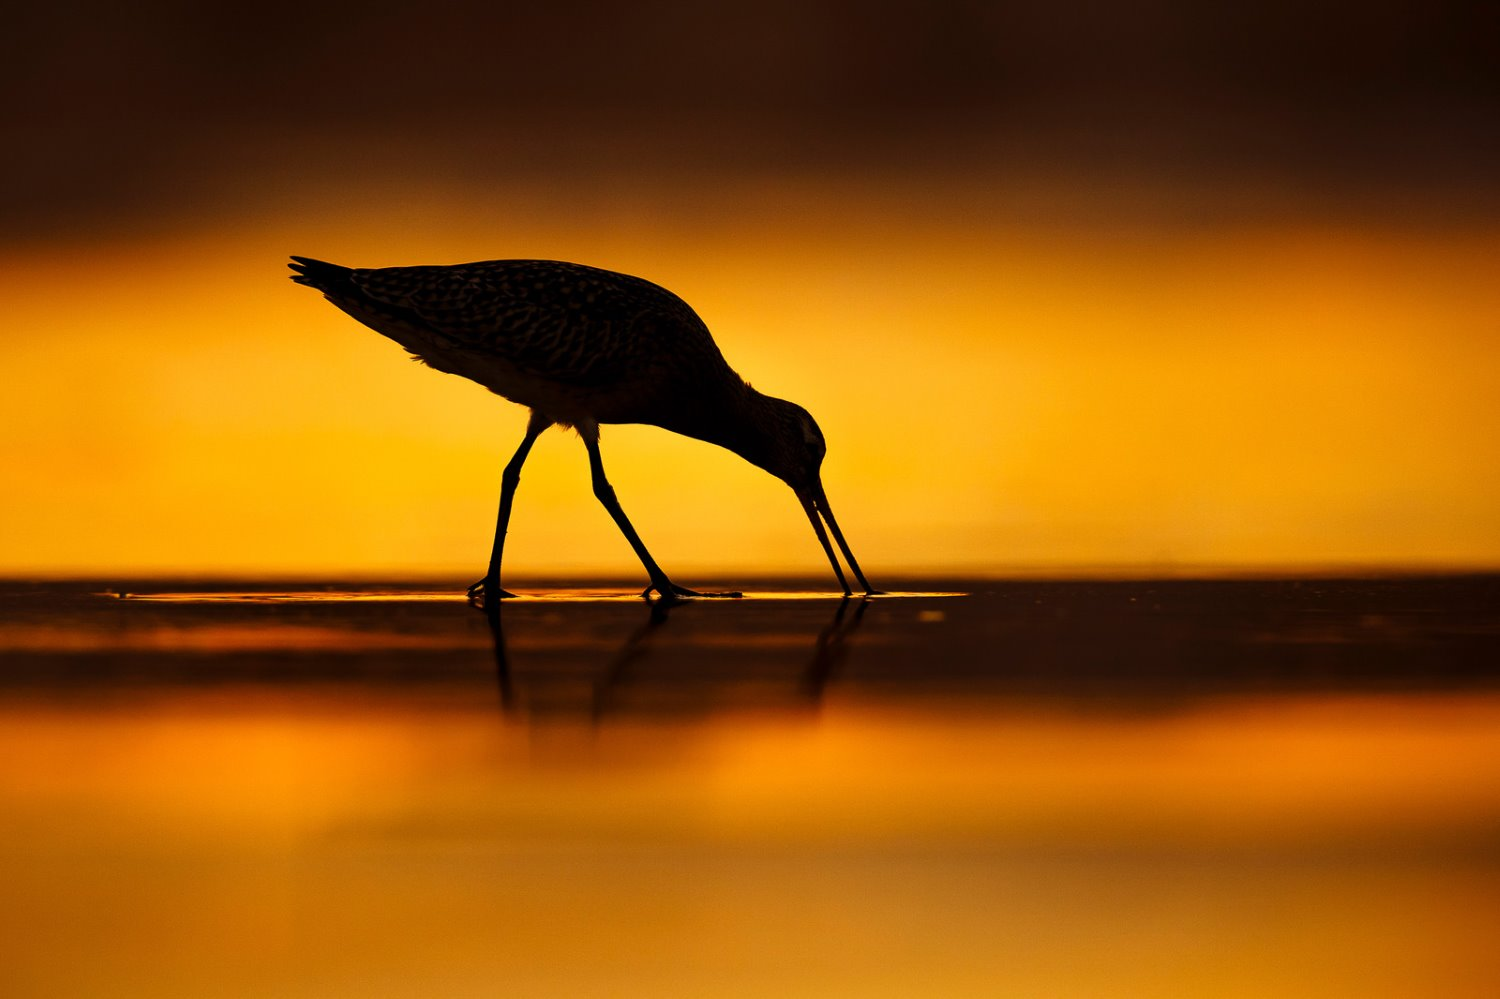 Bird Photographer of the Year finalist